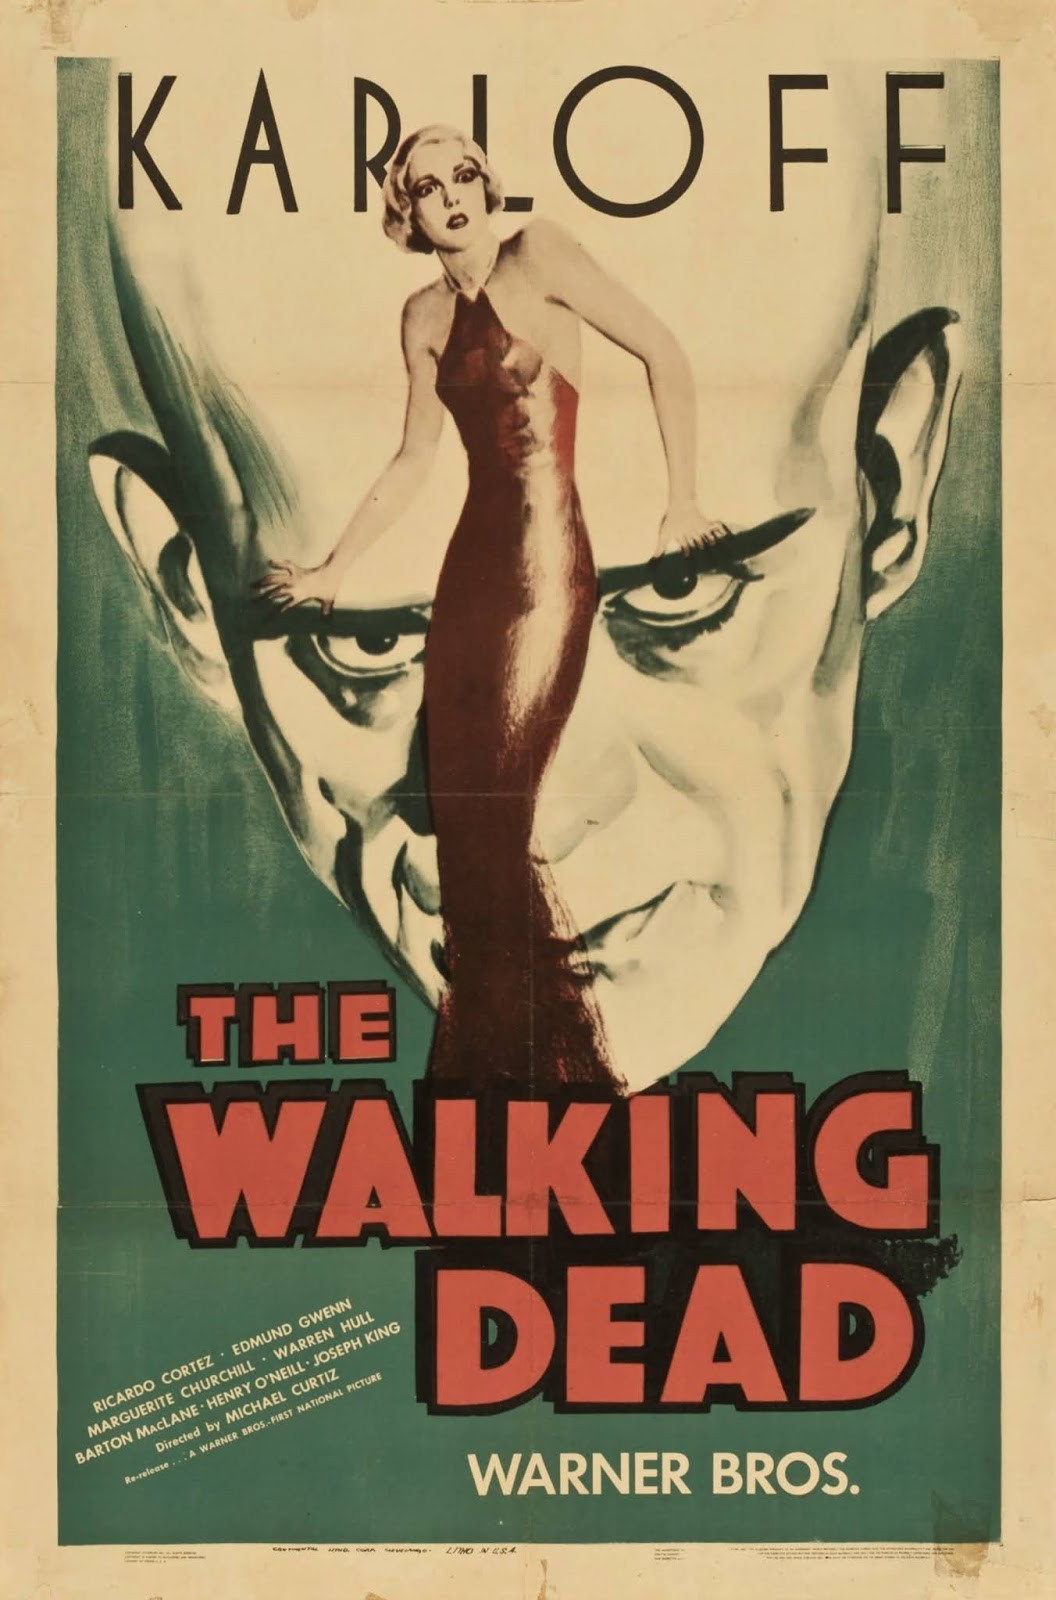 'Karloff' in big letters above poster art of woman in front of Boris Karloff's looming face with 'The Walking Dead' at bottom